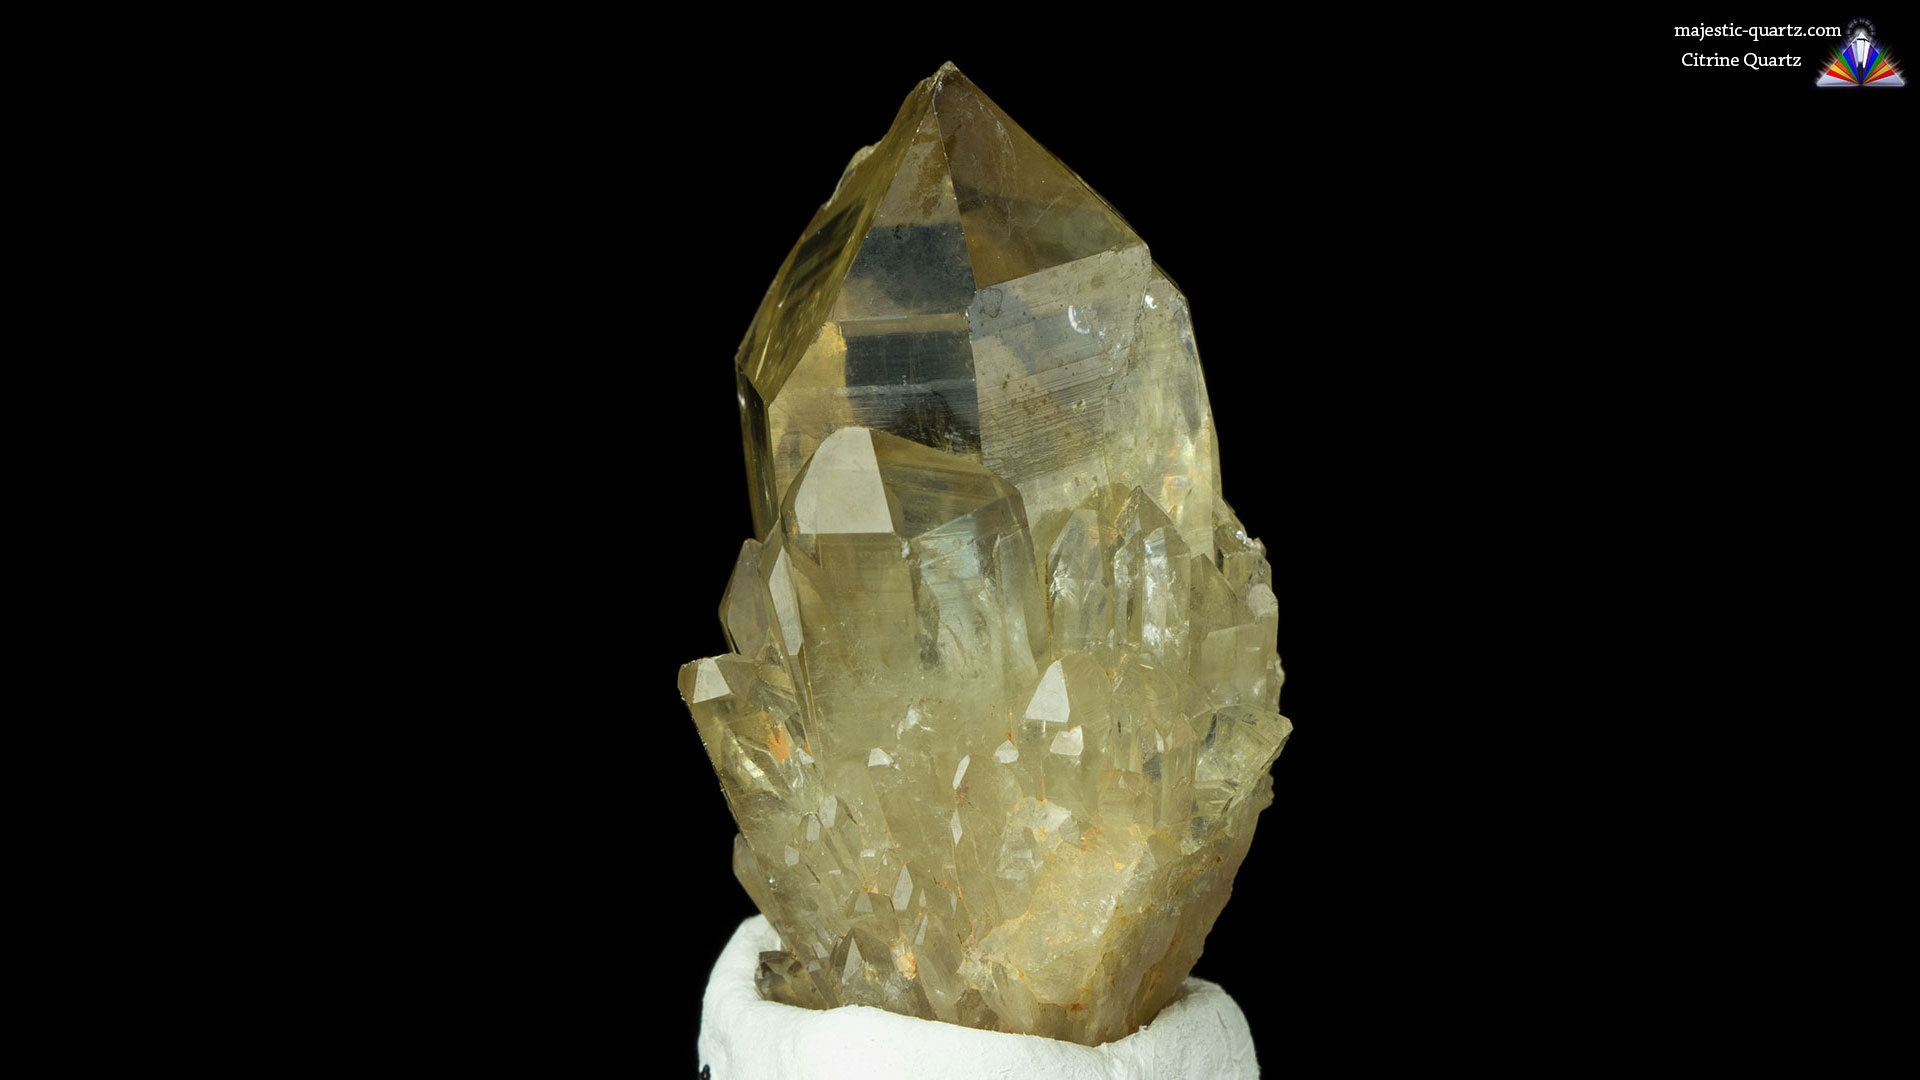 Citrine quartz properties and meaning photos crystal information citrine quartz properties and meaning photograph by anthony bradford biocorpaavc Image collections